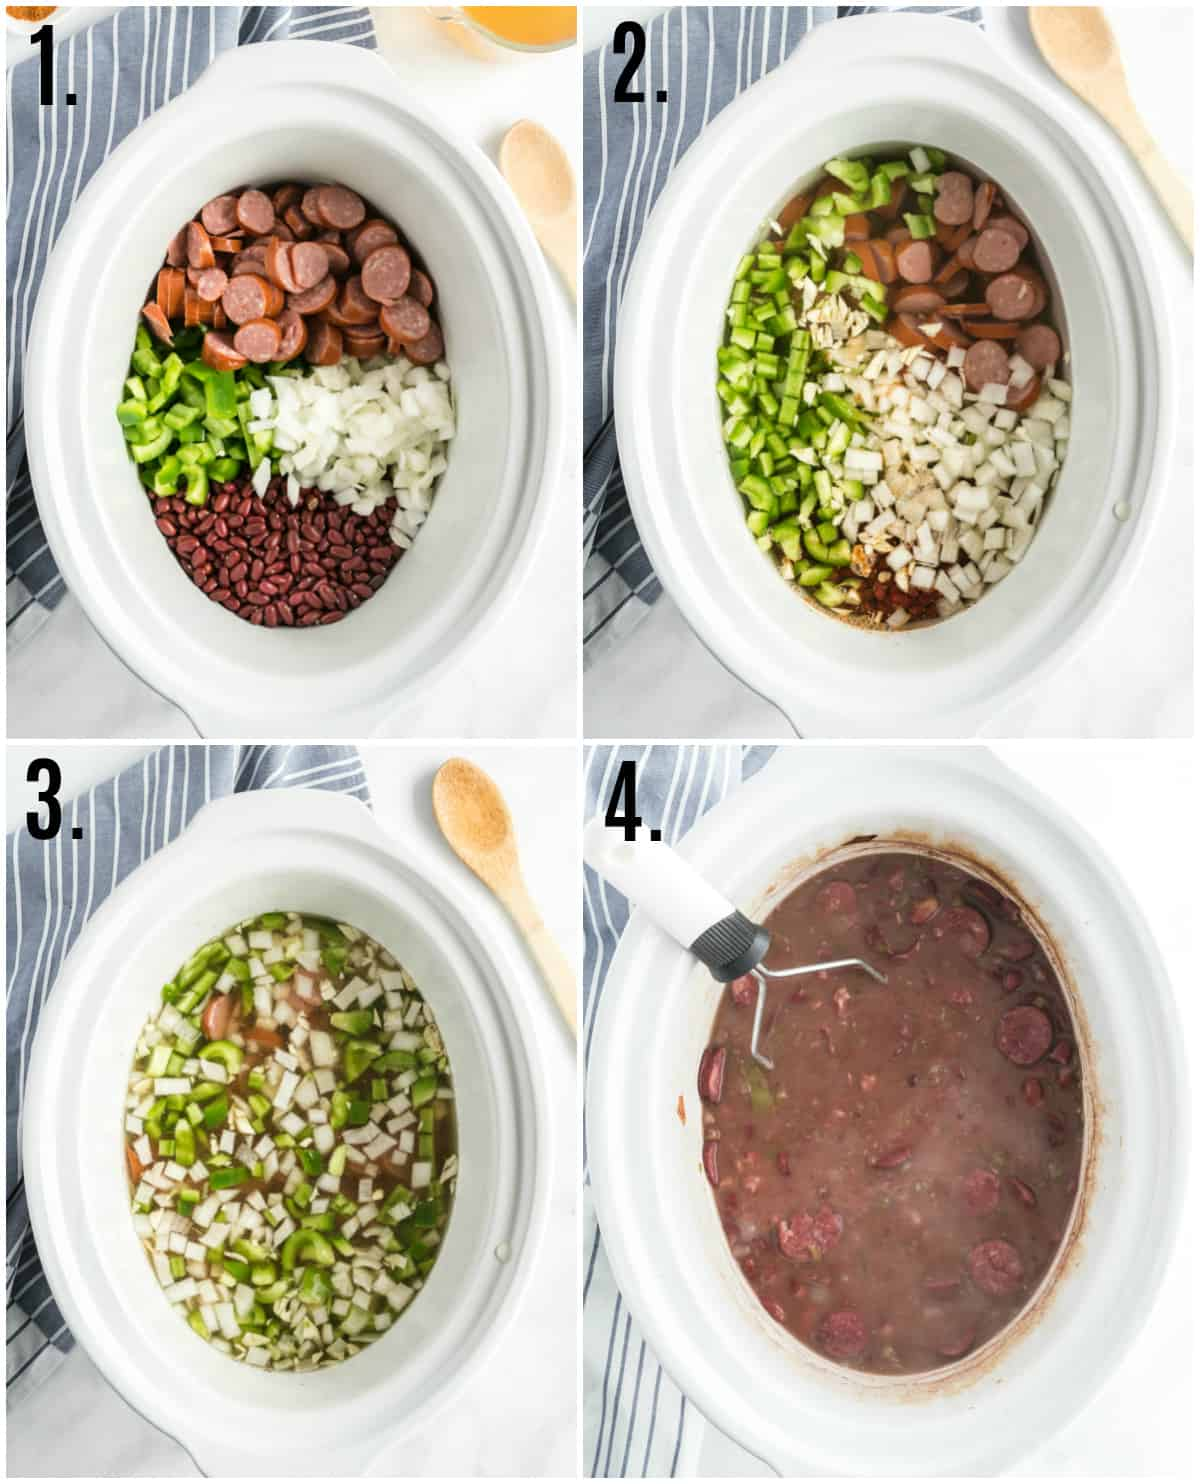 Step by step photos on how to make red beans and rice